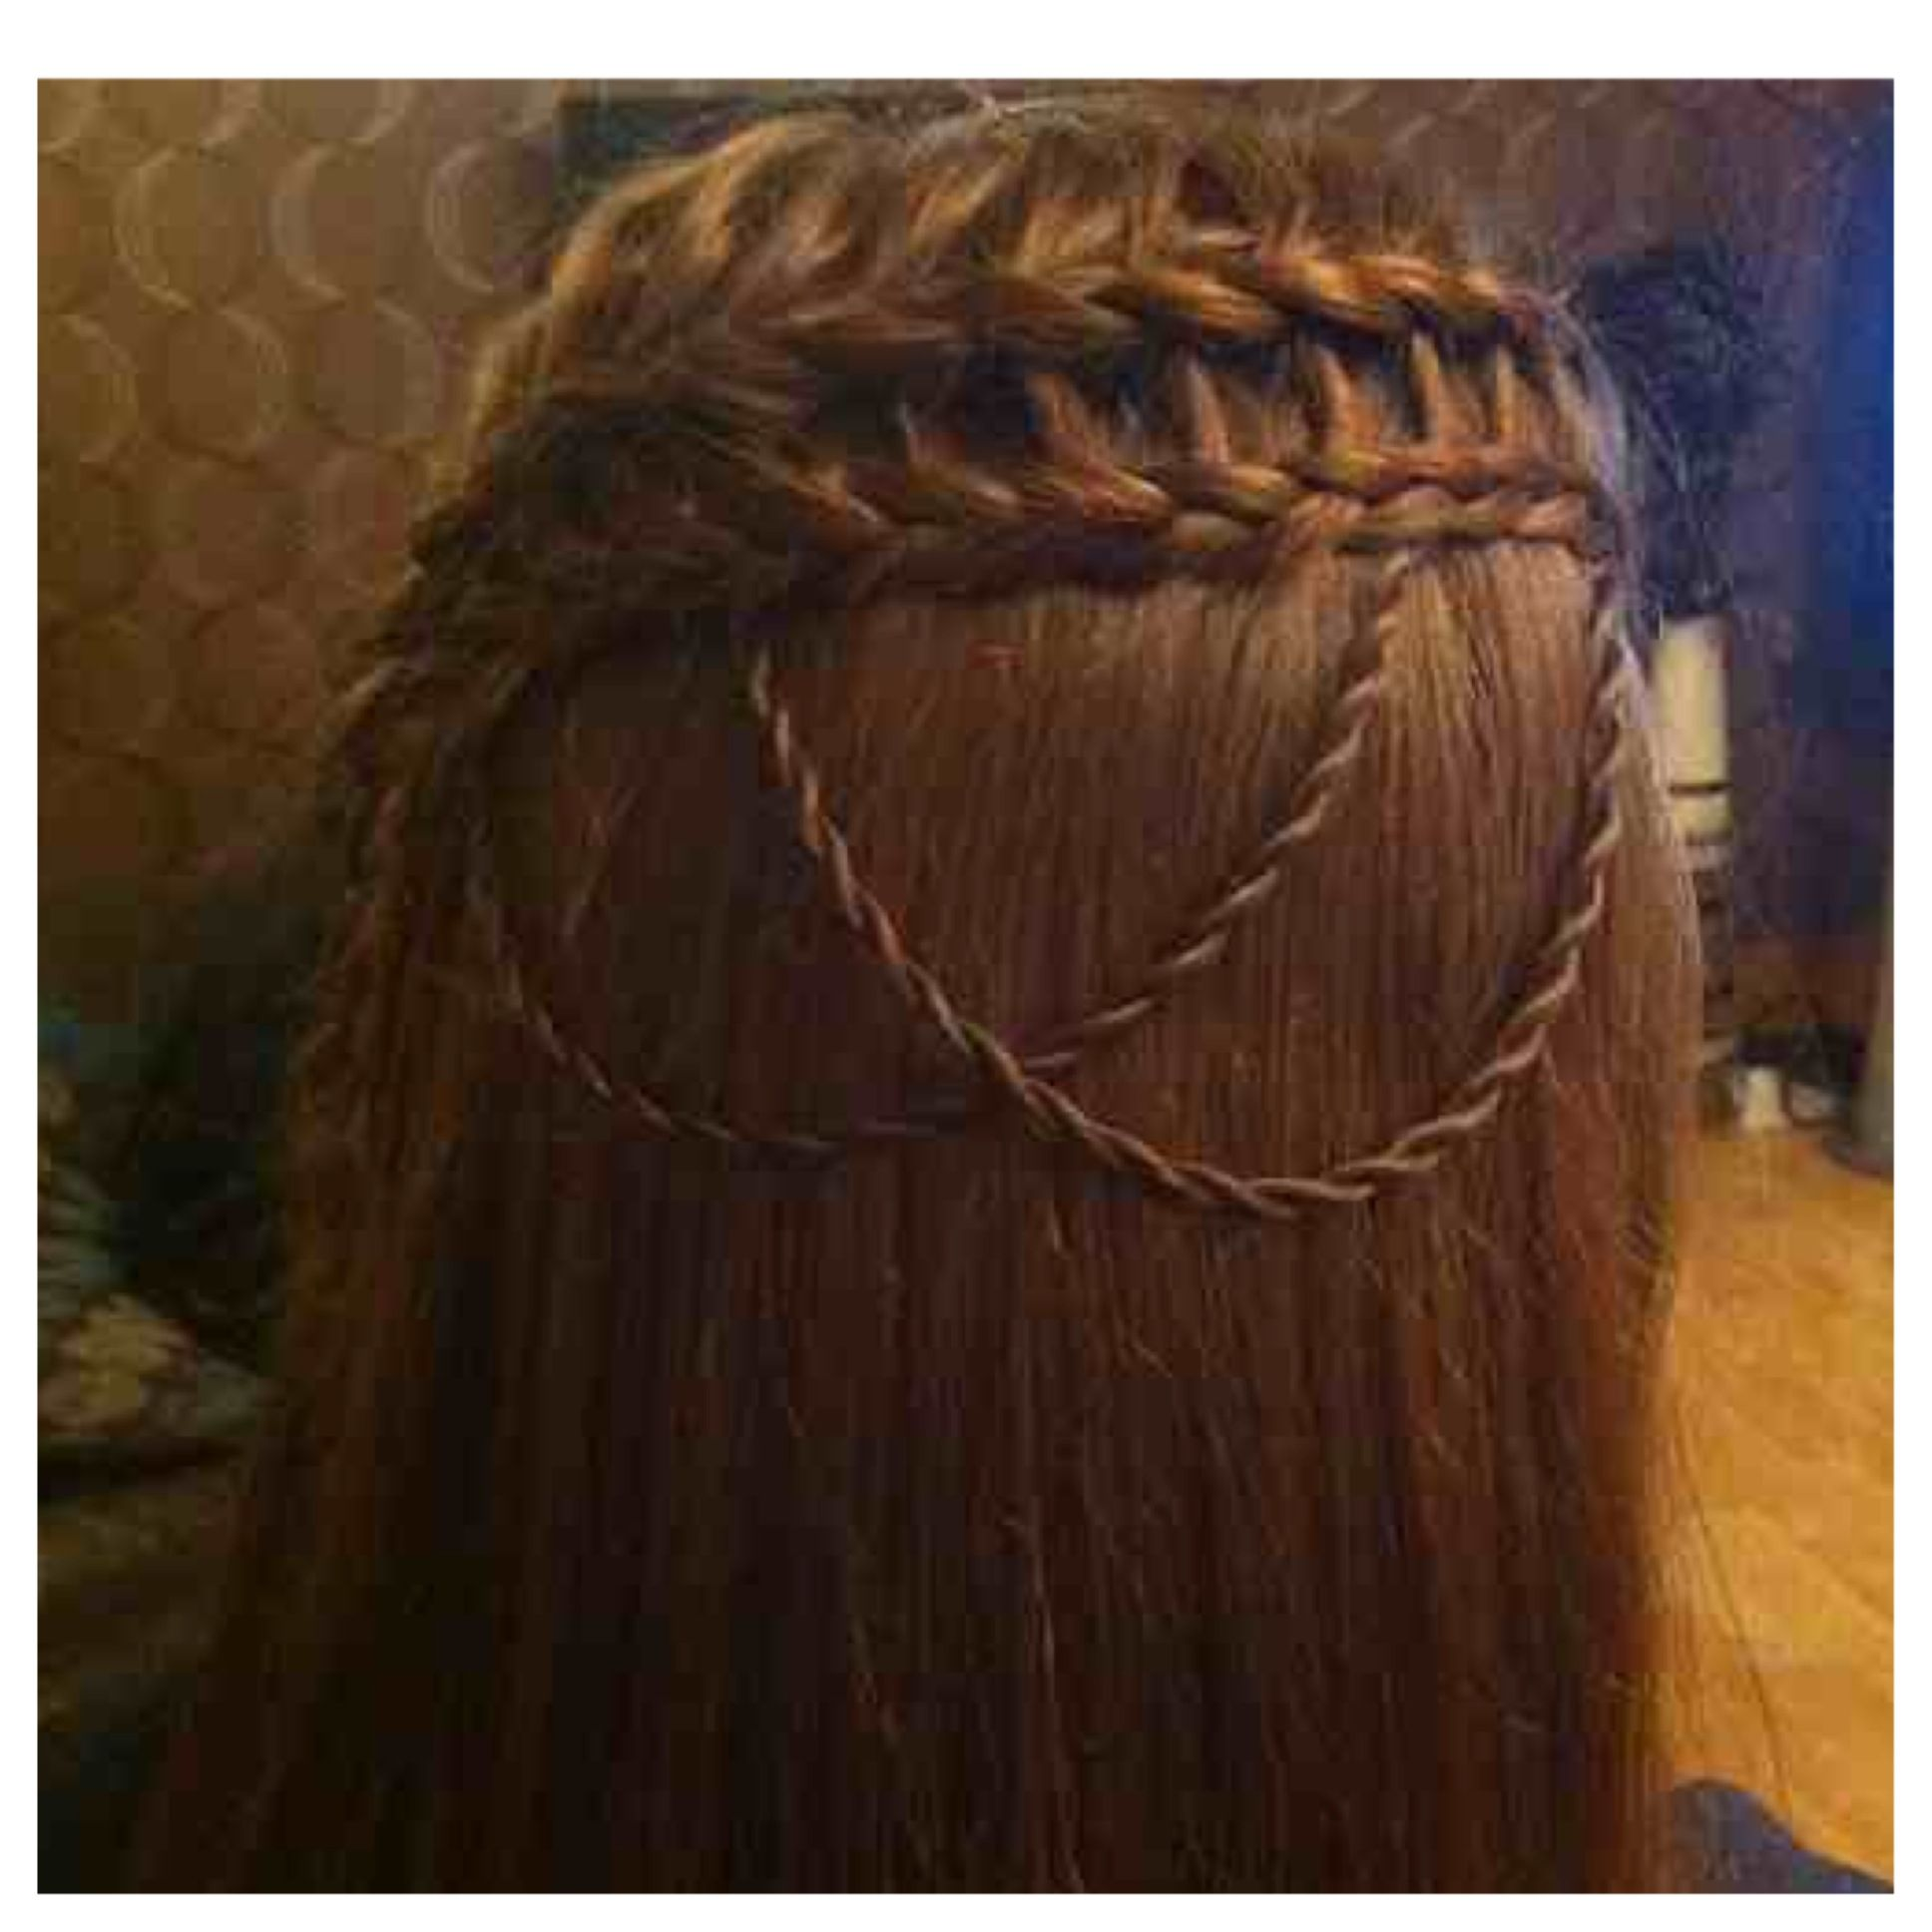 Hair Shows, Medieval Hairstyles